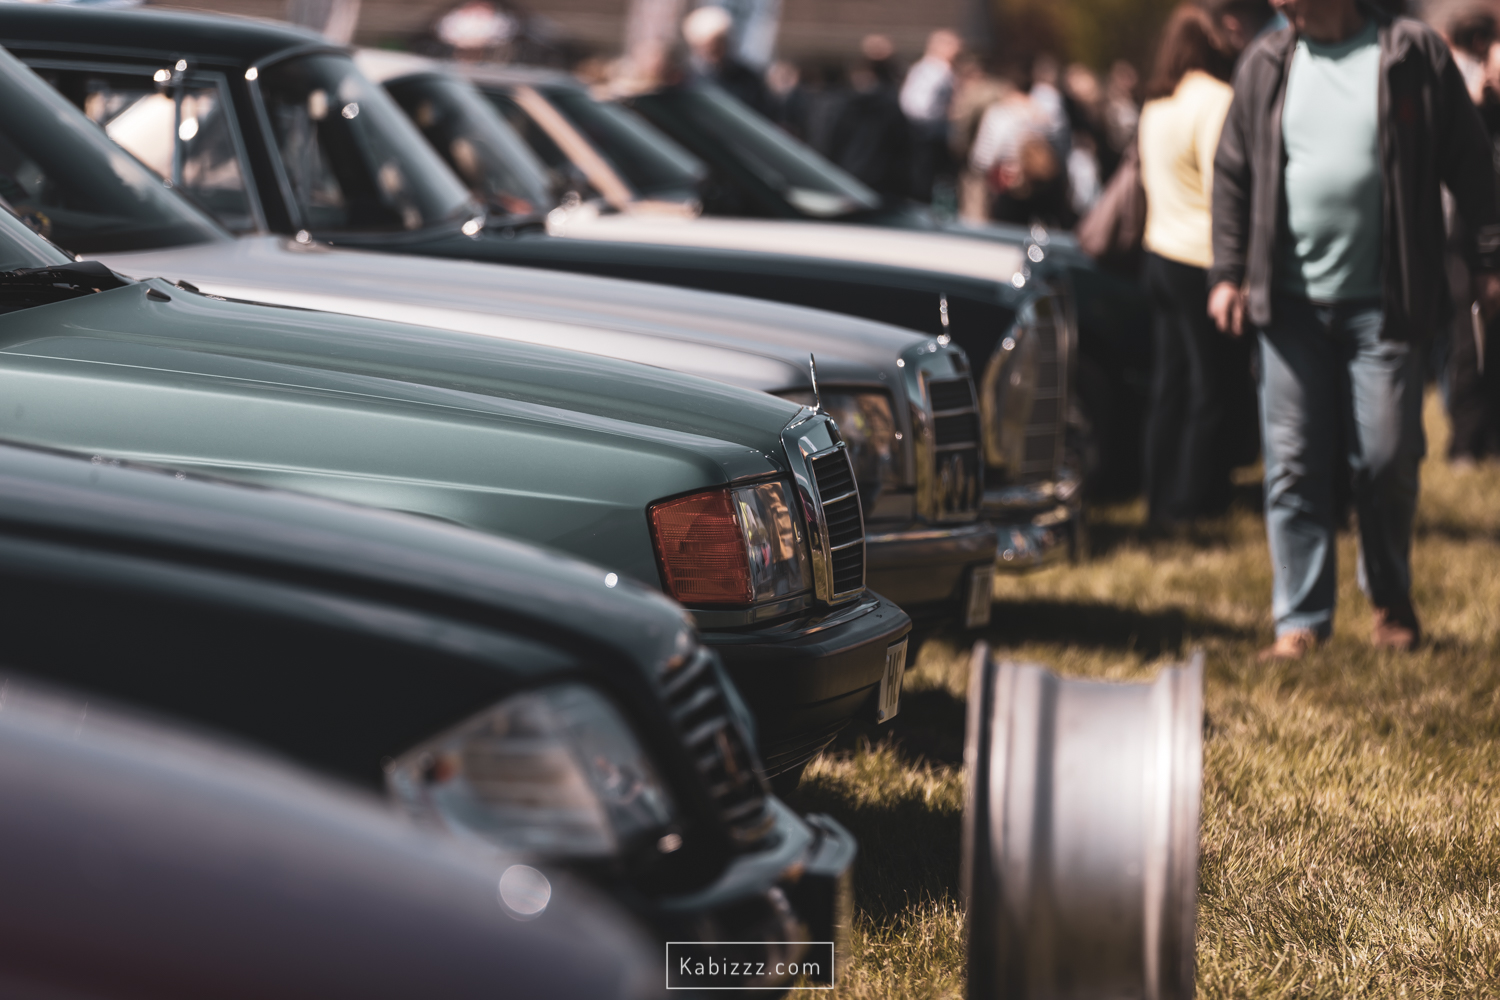 Kabizzz_Photography_Stirling_District_Classic _cars-86.jpg